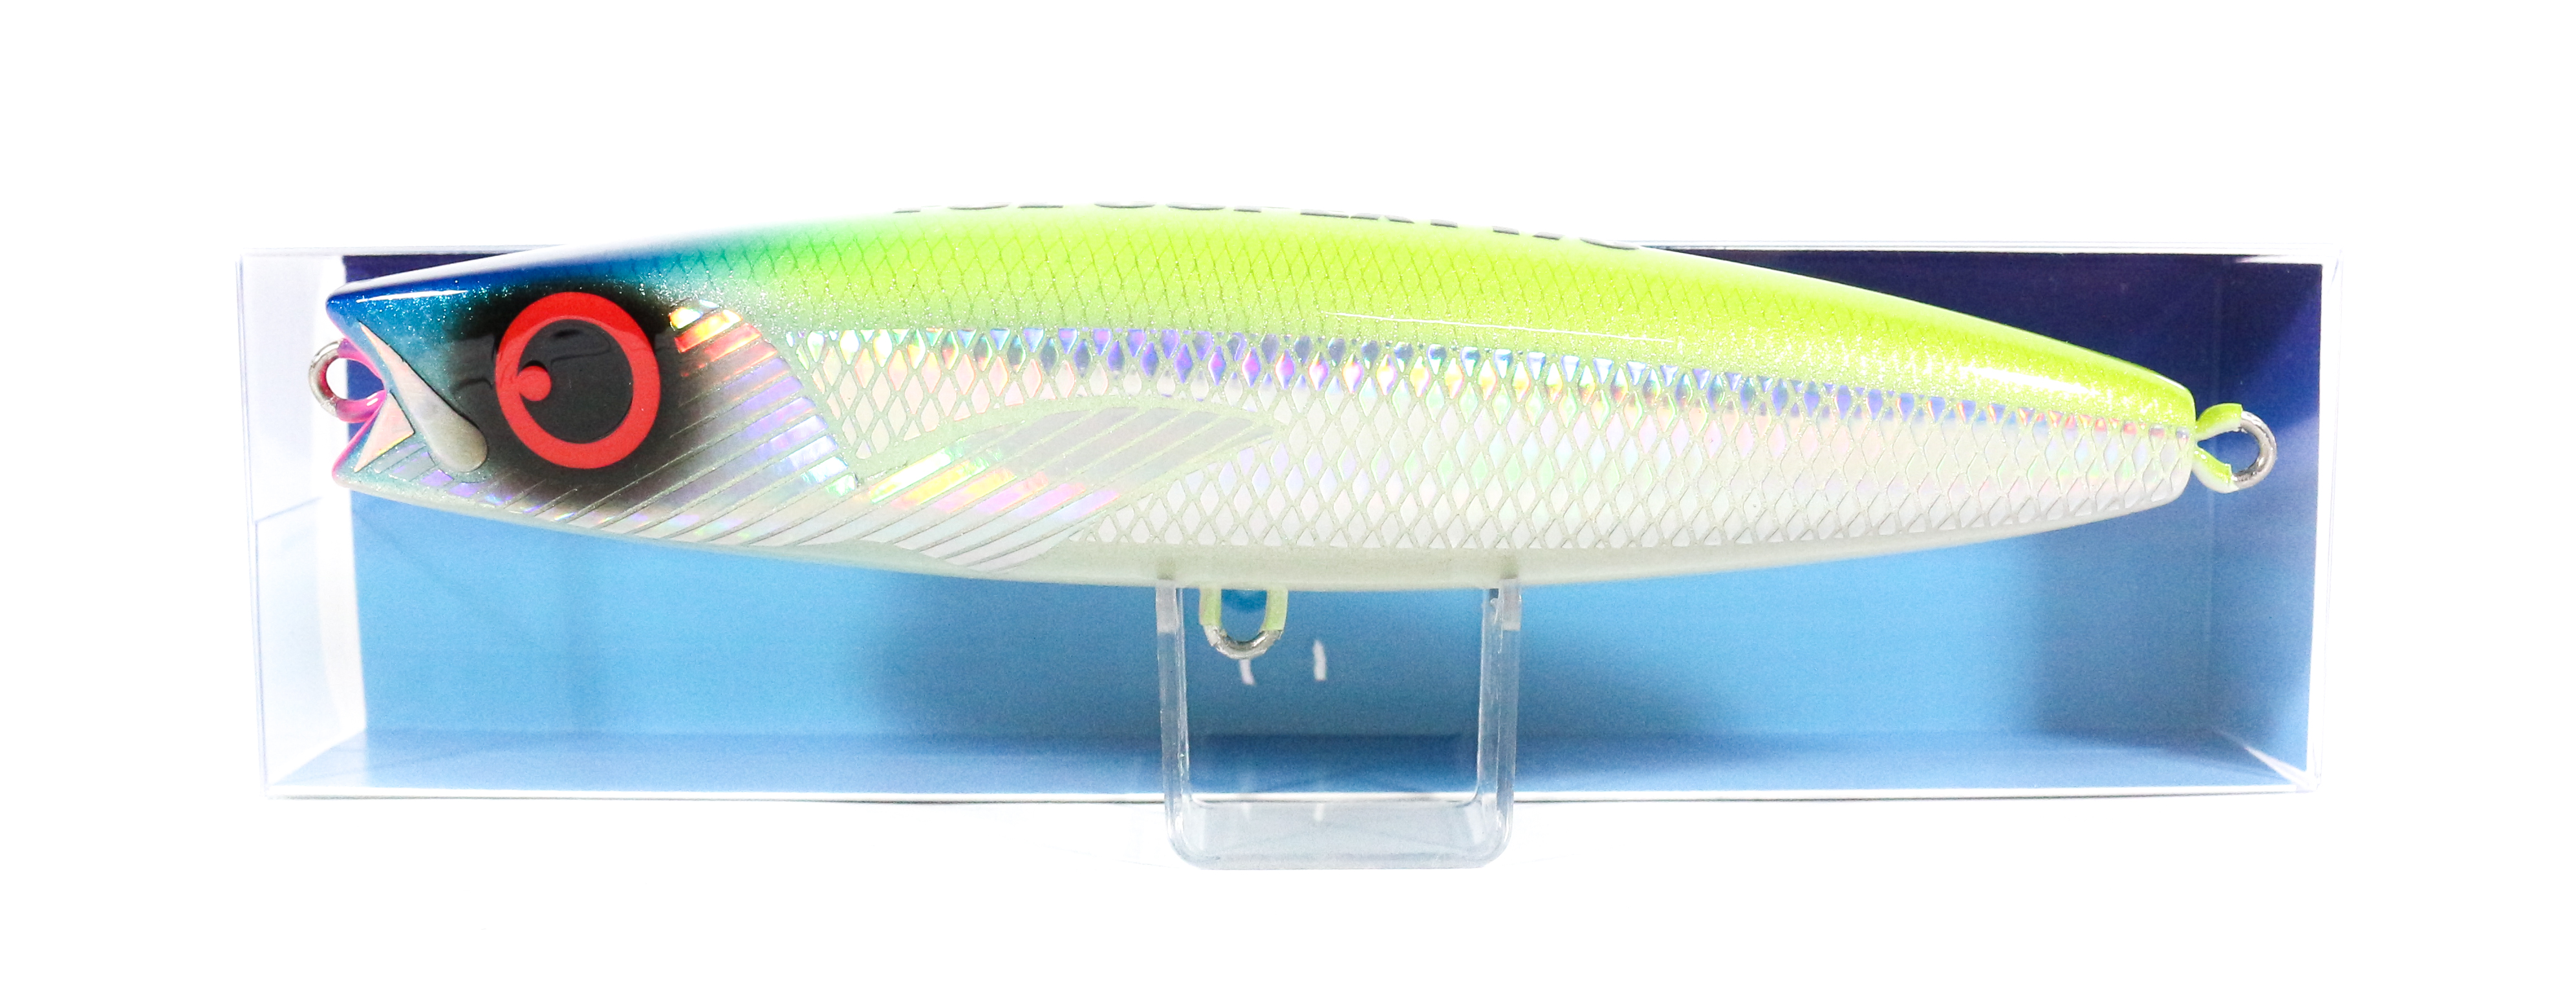 FCL Labo Stick Bait CSP EXT 170 Floating Lure BYP (8526)